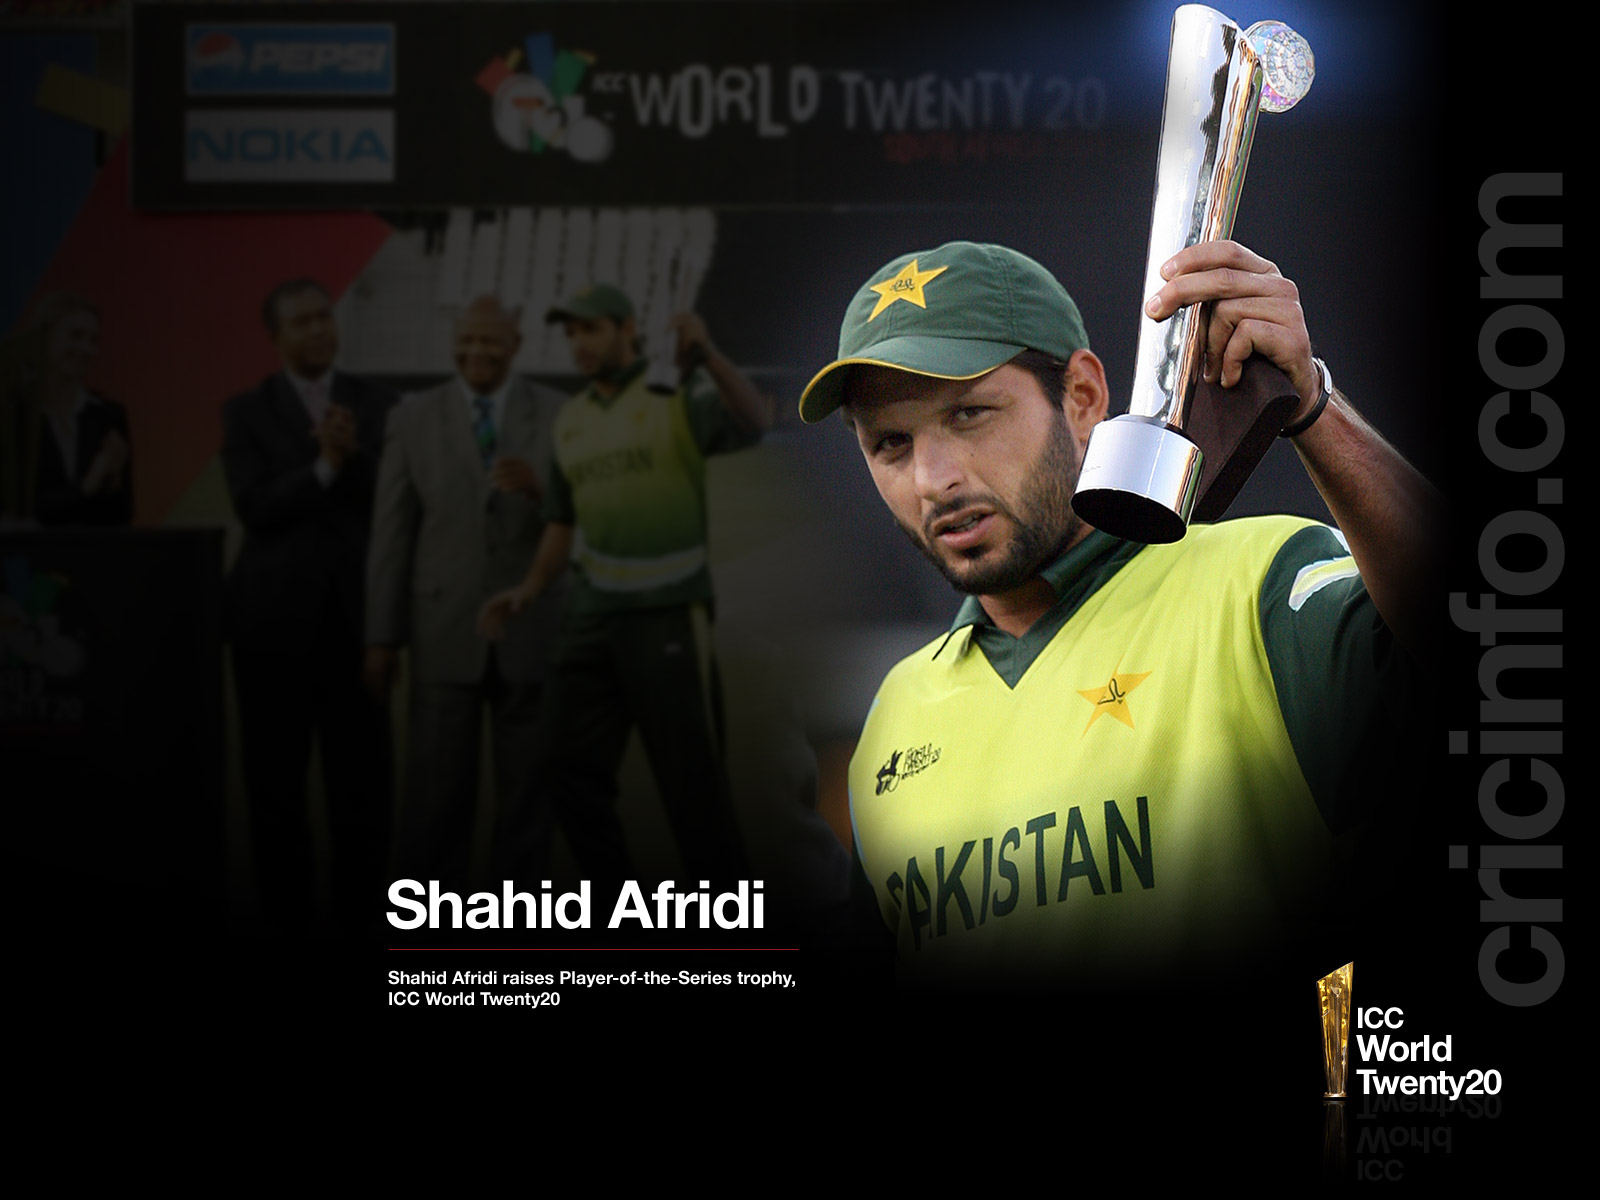 Shahid Afridi With The Player Of Series Trophy